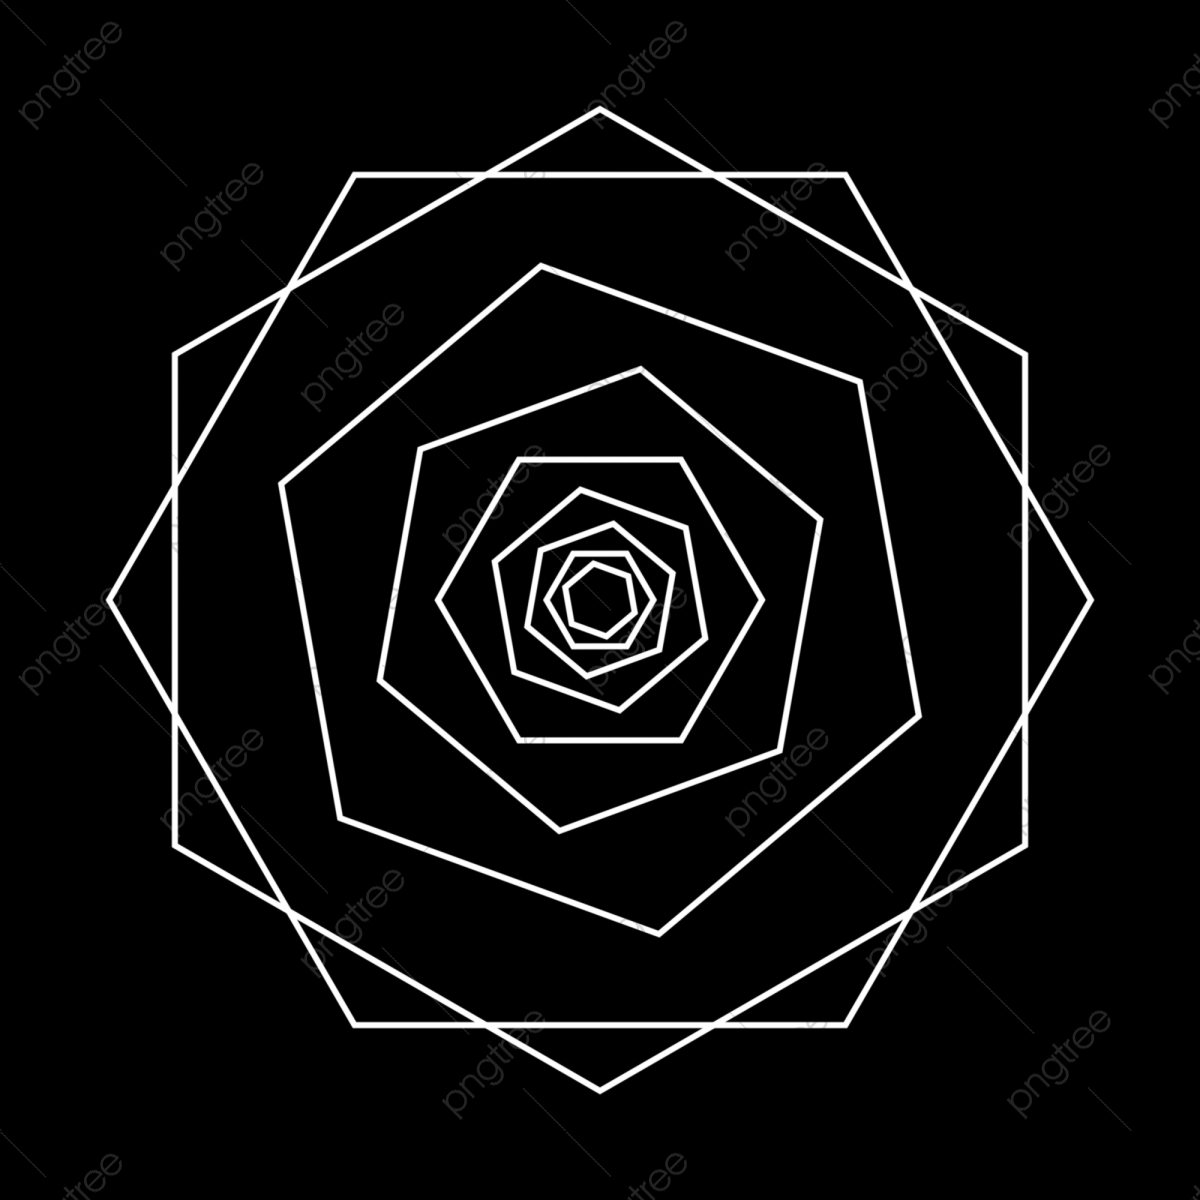 Ancient Geometry Abstract Rose Flower Mandala In Black And